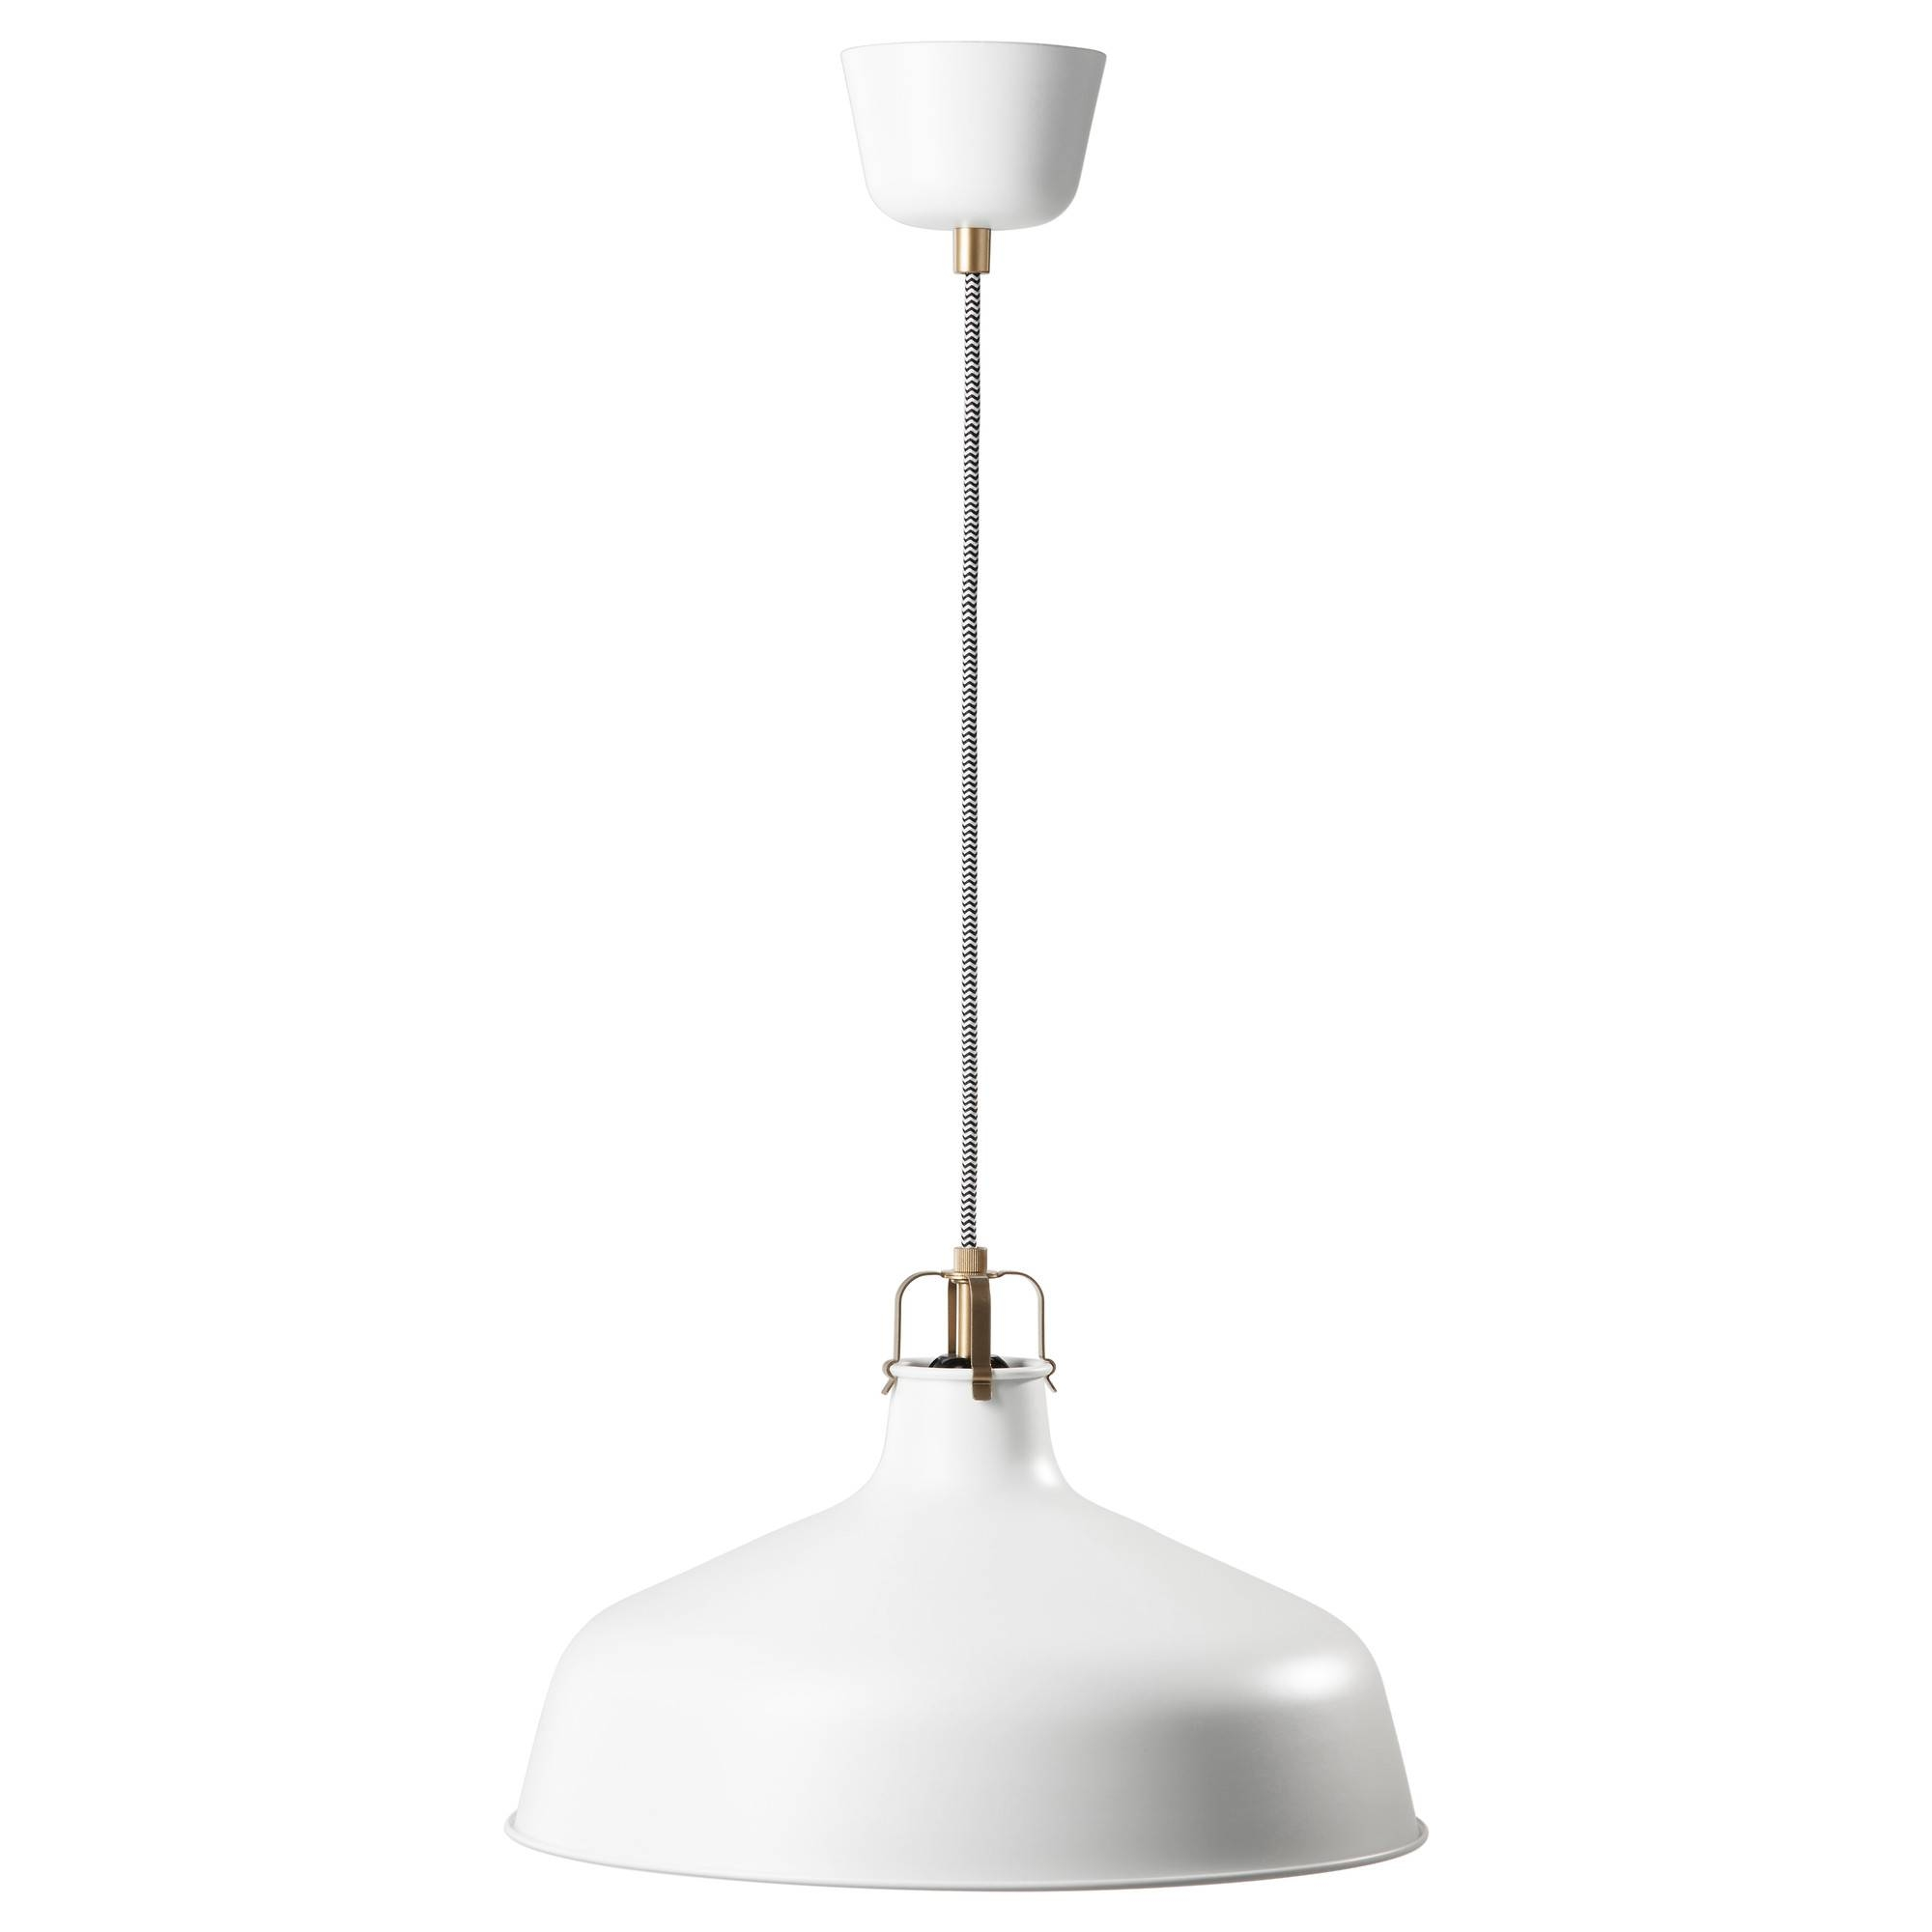 Ranarp Pendant Lamp Off White 38 Cm – Ikea Intended For Ikea Globe Pendant Lights (View 13 of 15)